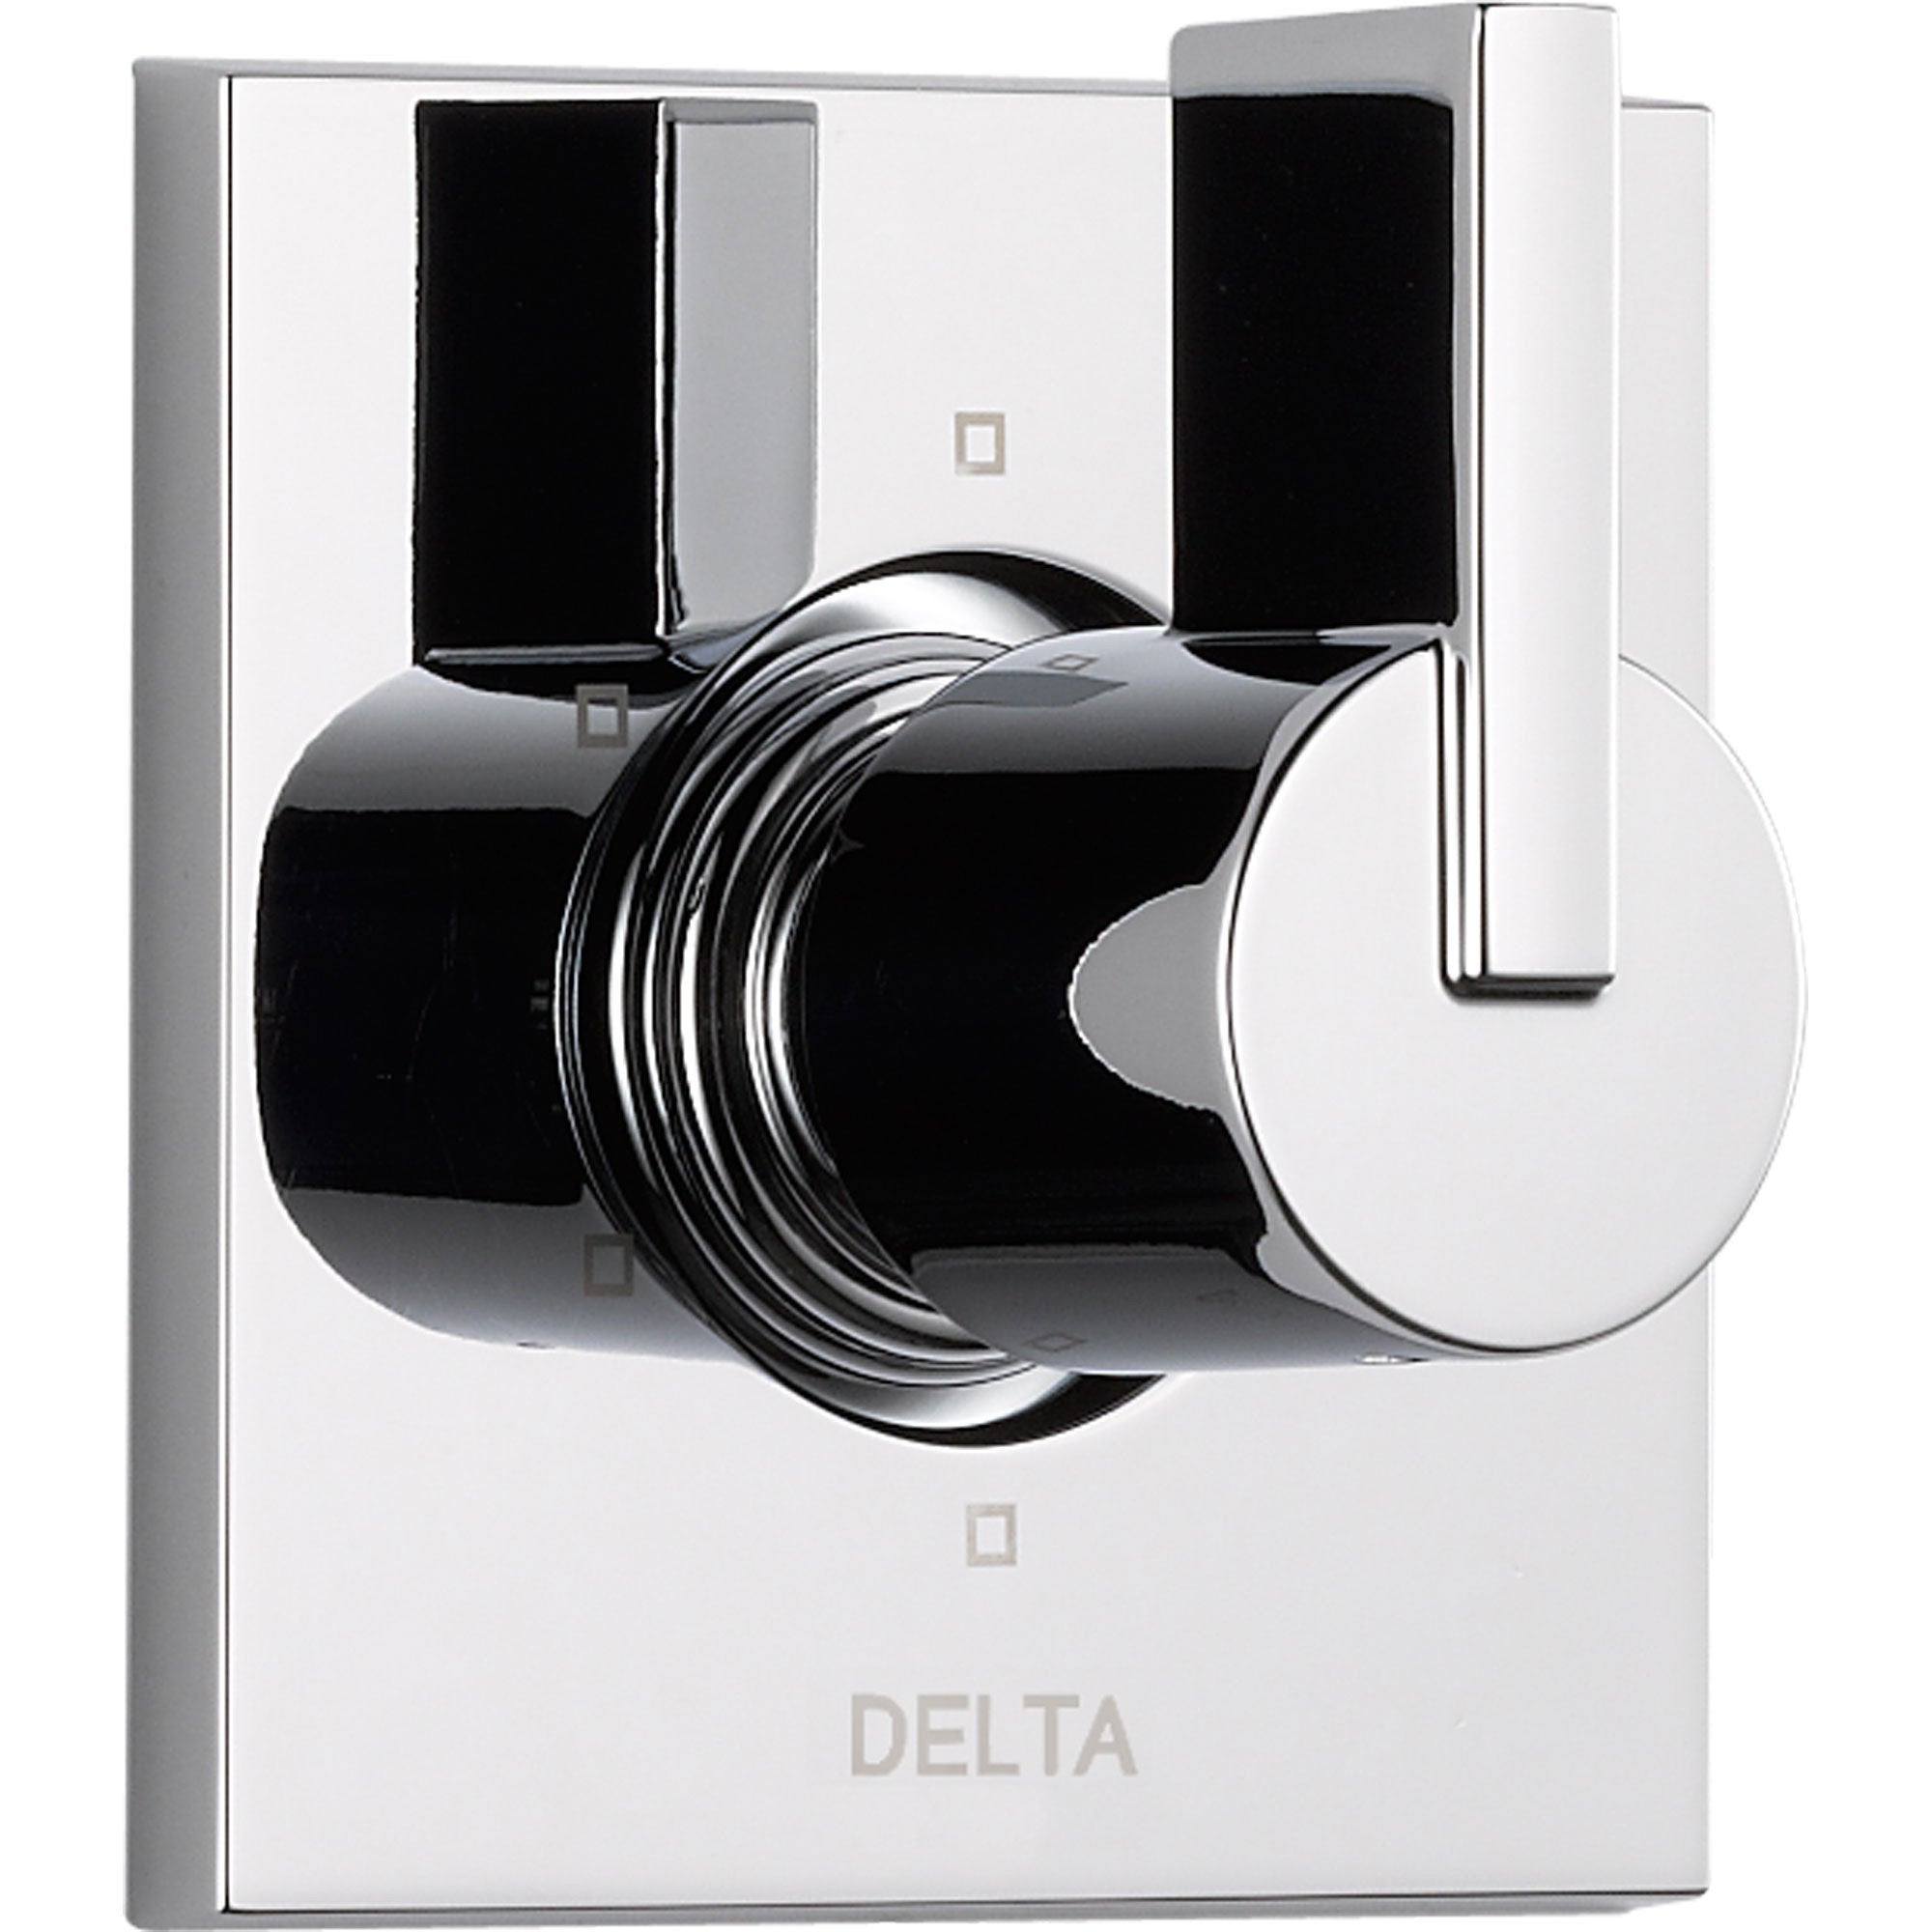 Delta Vero 6-Setting Chrome Single Handle Shower Diverter Trim Kit 521916